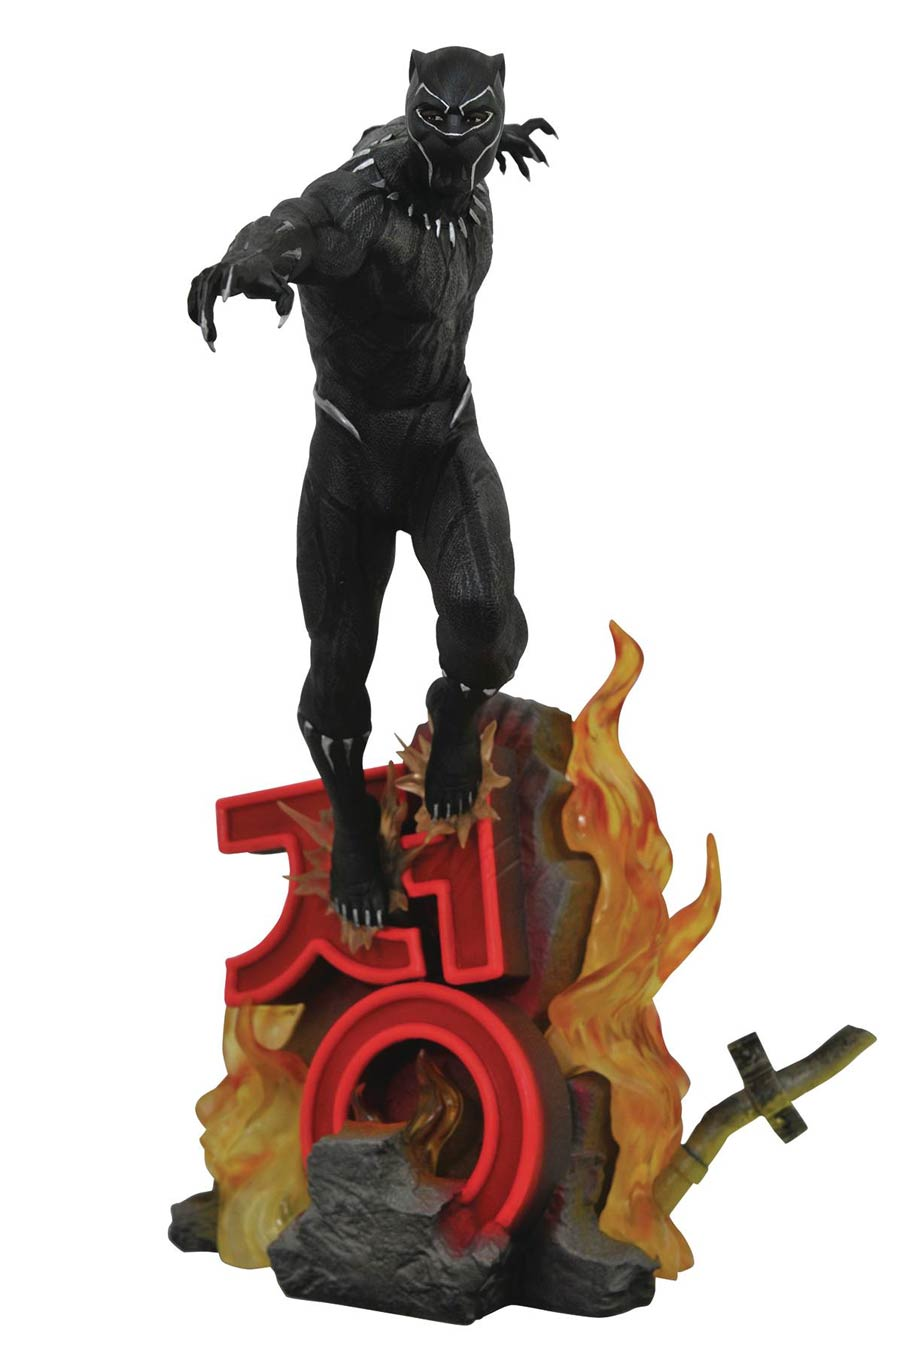 Marvel Movie Premier Collection Black Panther Statue